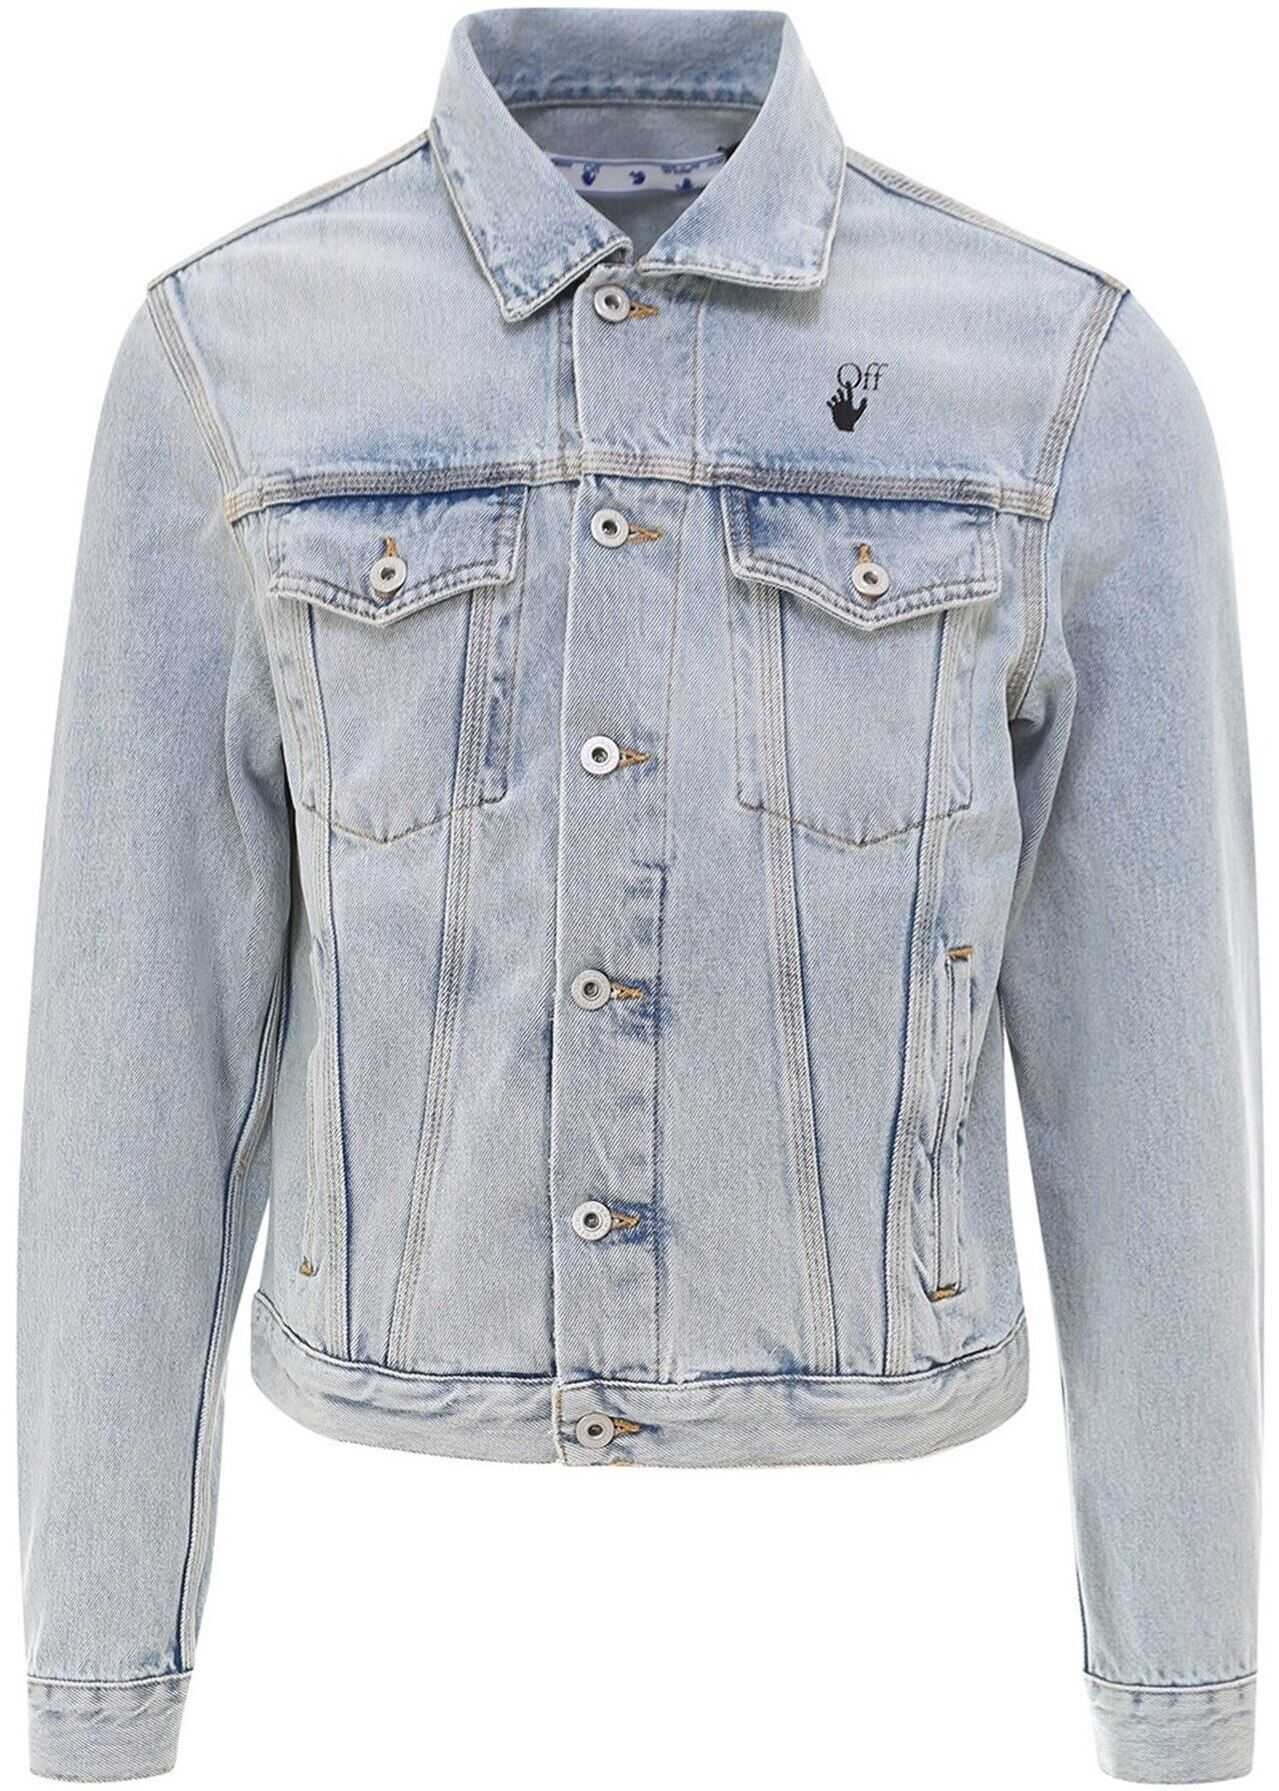 Off-White Monnalisa Denim Jacket In Light Blue Light Blue imagine